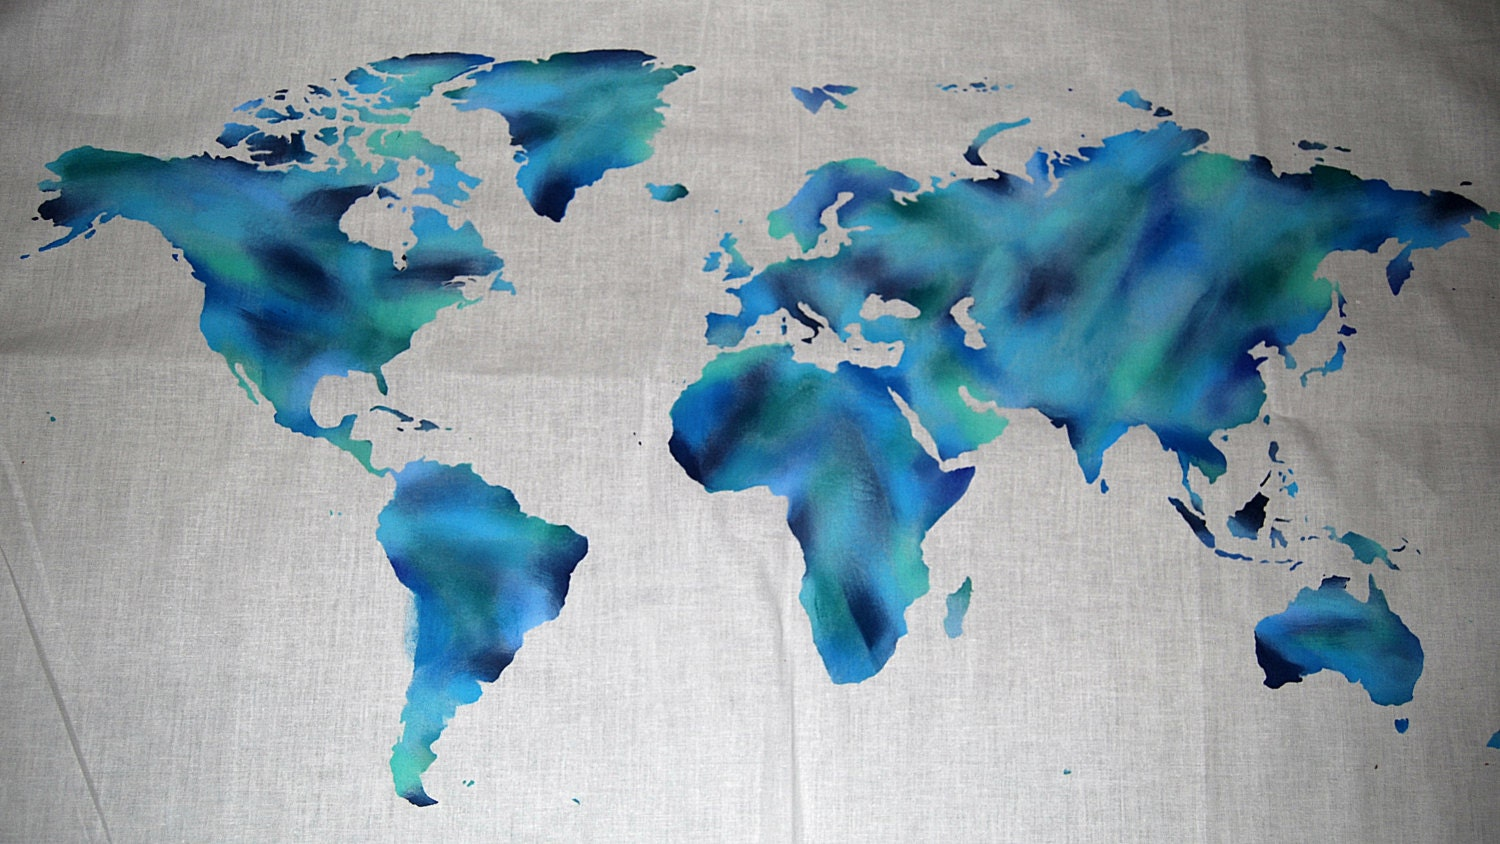 World Map Wall Tapestry Shades of Blues Brush Stroke Water